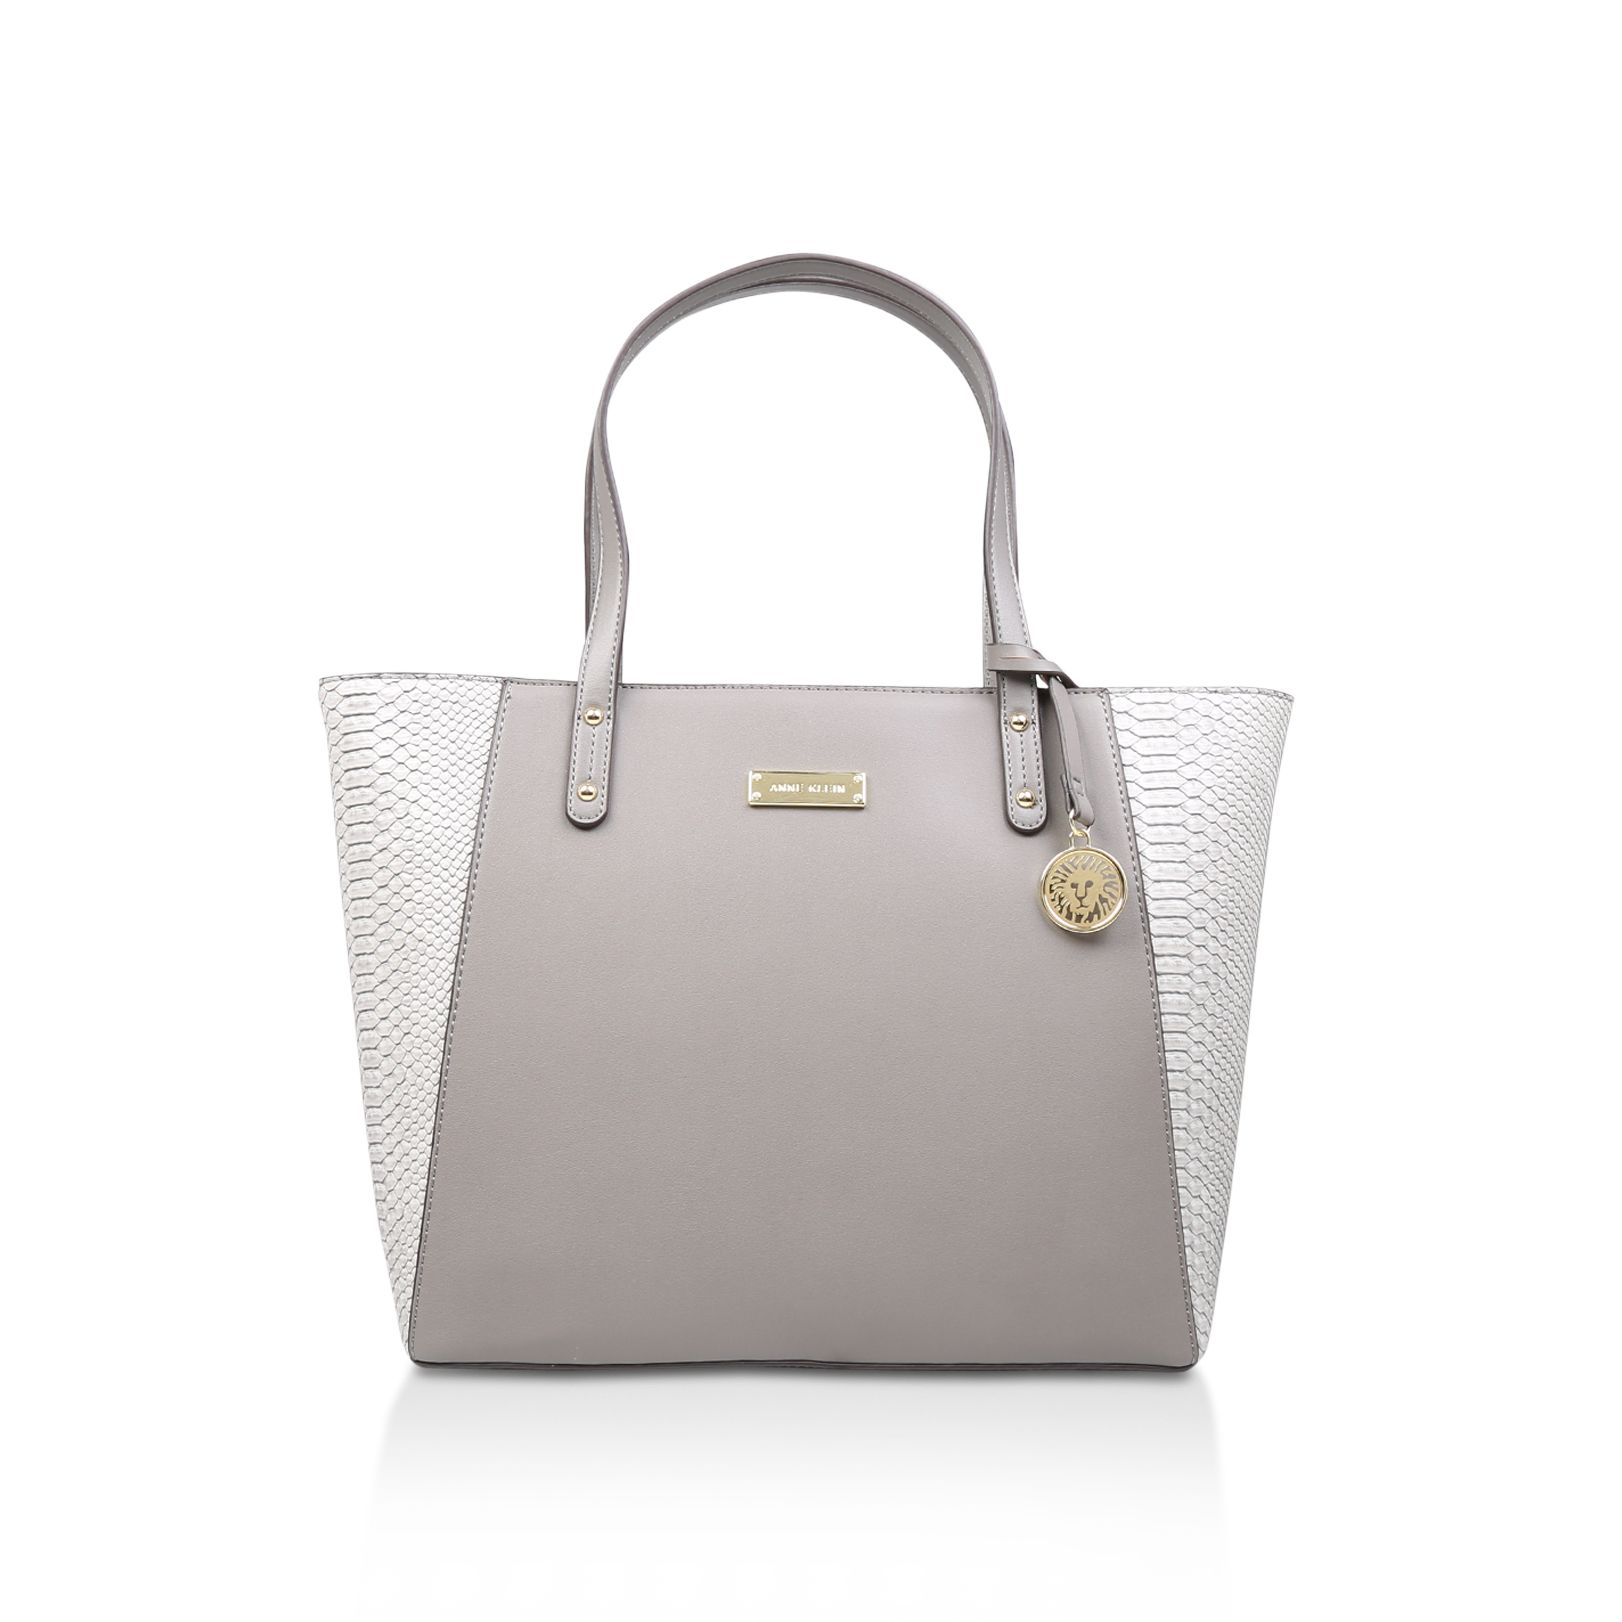 Anne Klein Concept Tote Bag, Grey